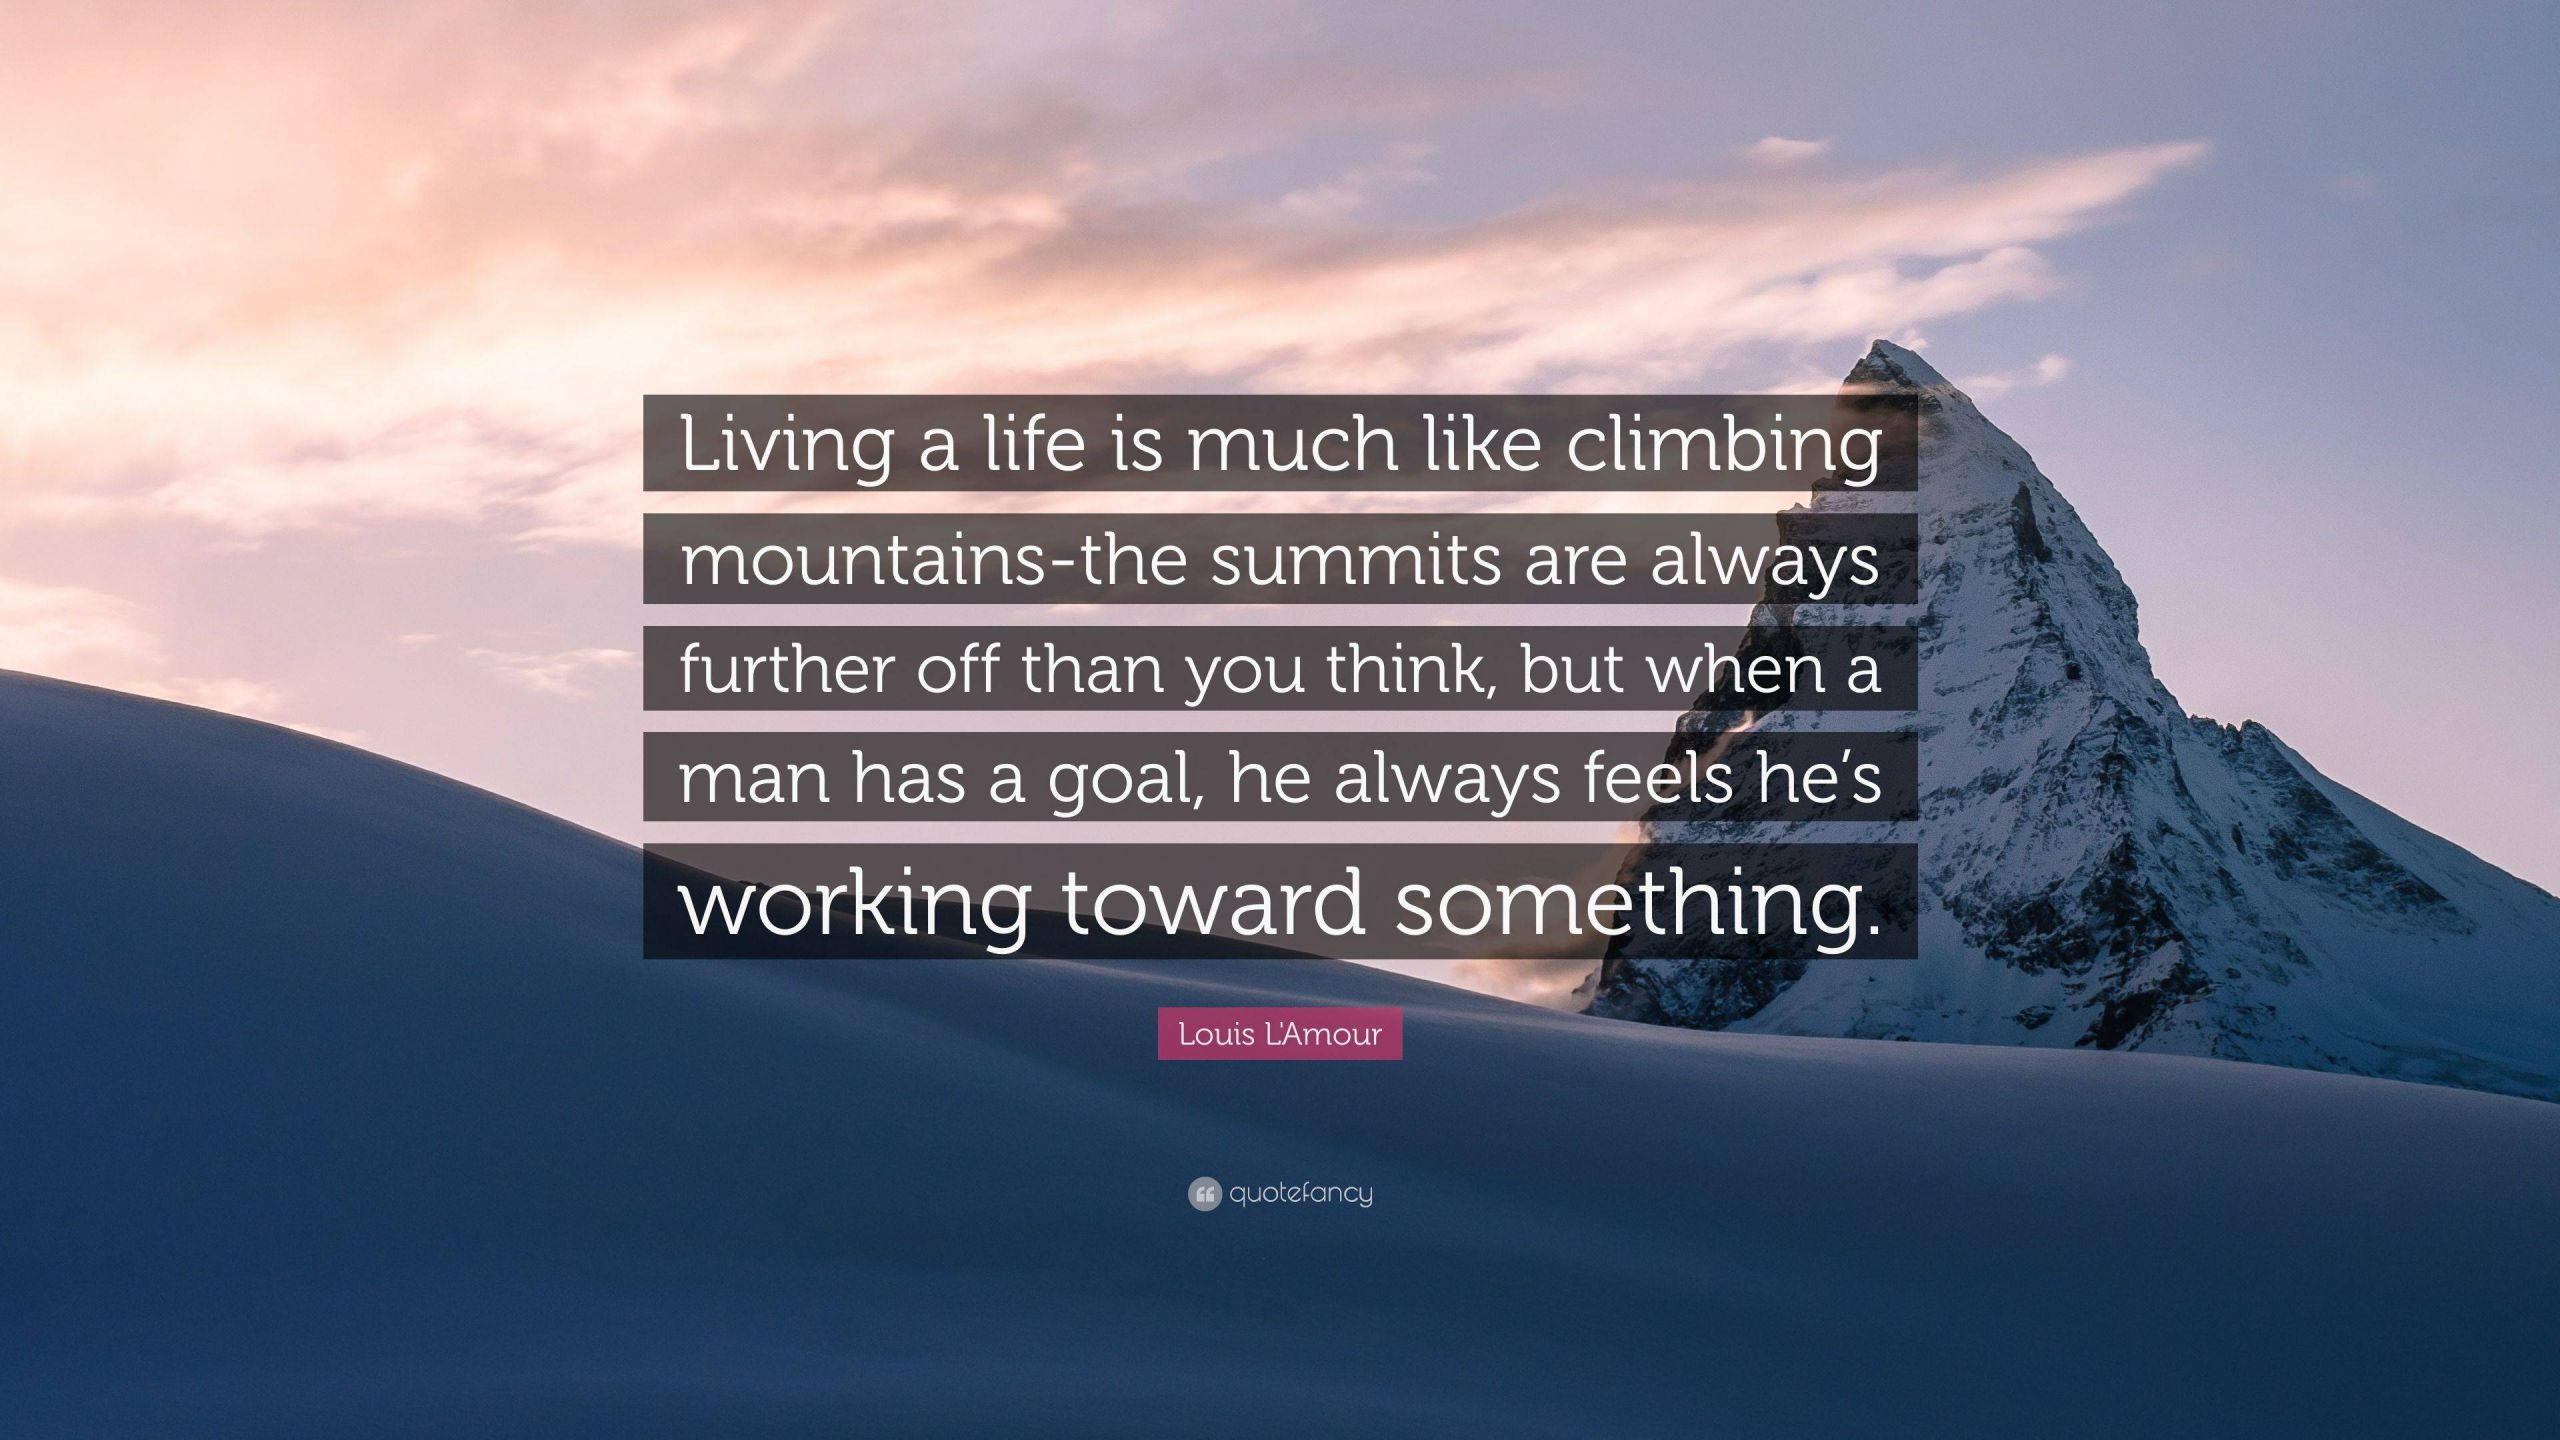 Louis L Amour Quote Living a life is much like climbing mountains